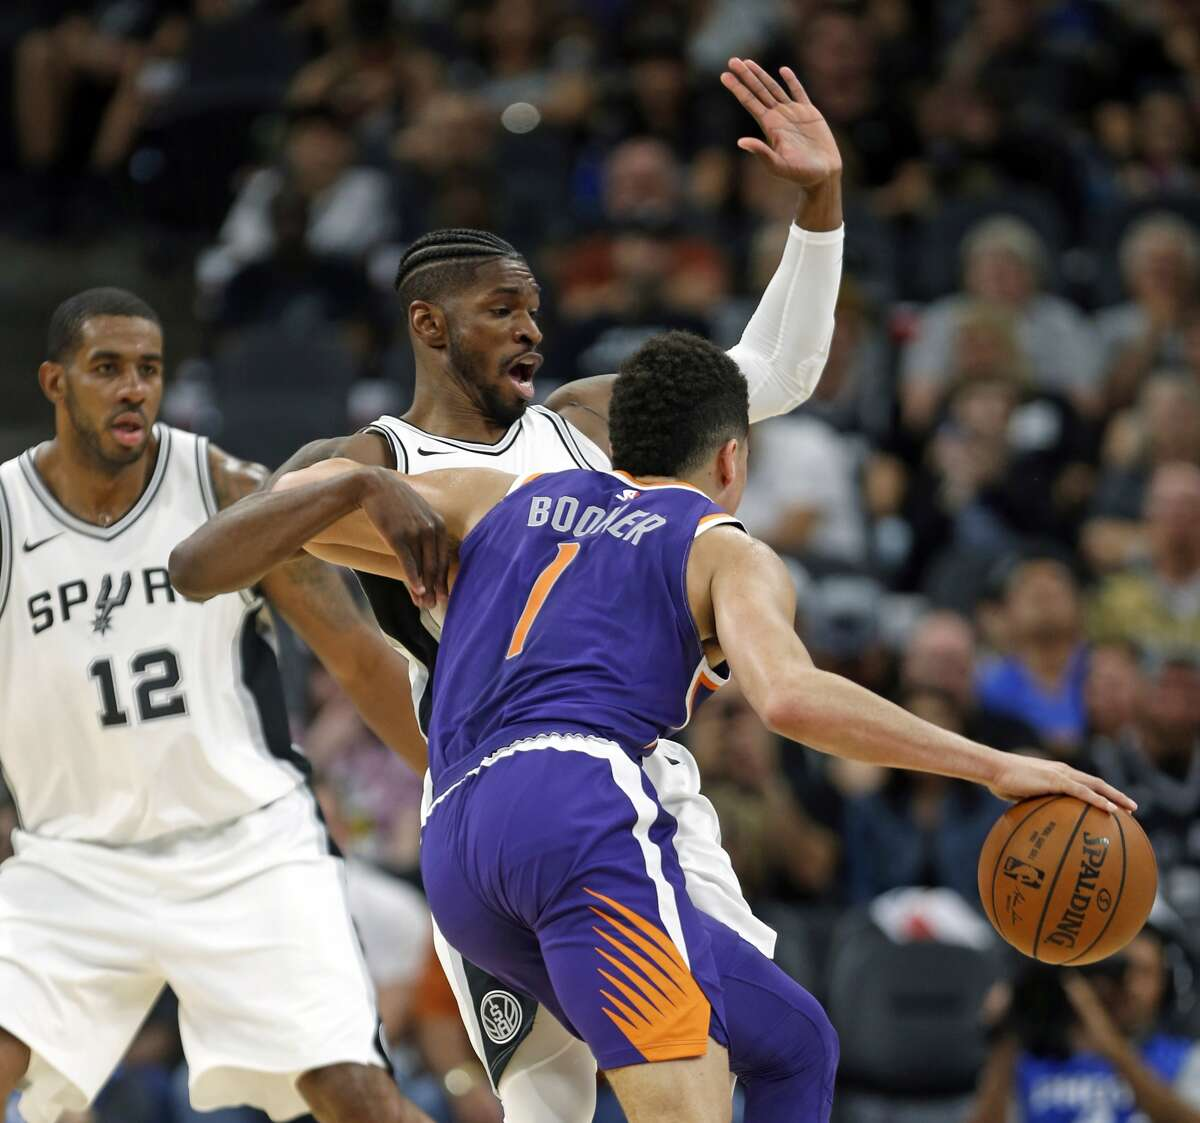 San AntonioSpursBrandon Paul draws a charge from Phoenix Suns' Devin Booker during the first half of an NBA game on Sunday, Nov. 5, 2017 in San Antonio. (AP Photo/Ronald Cortes)